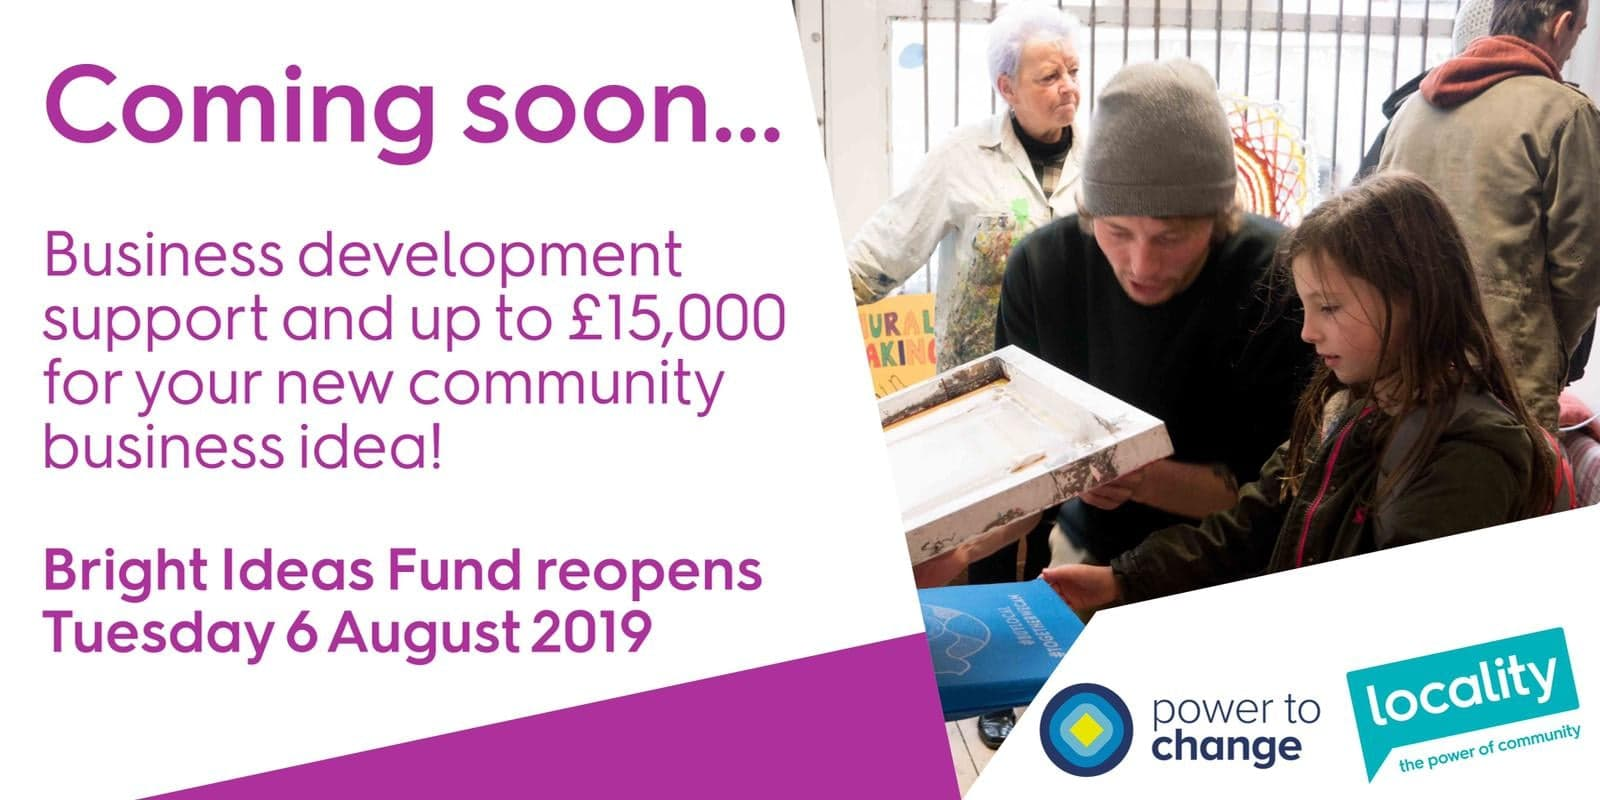 People with Bright Ideas for a community business urged to apply for share of £3.2m fund